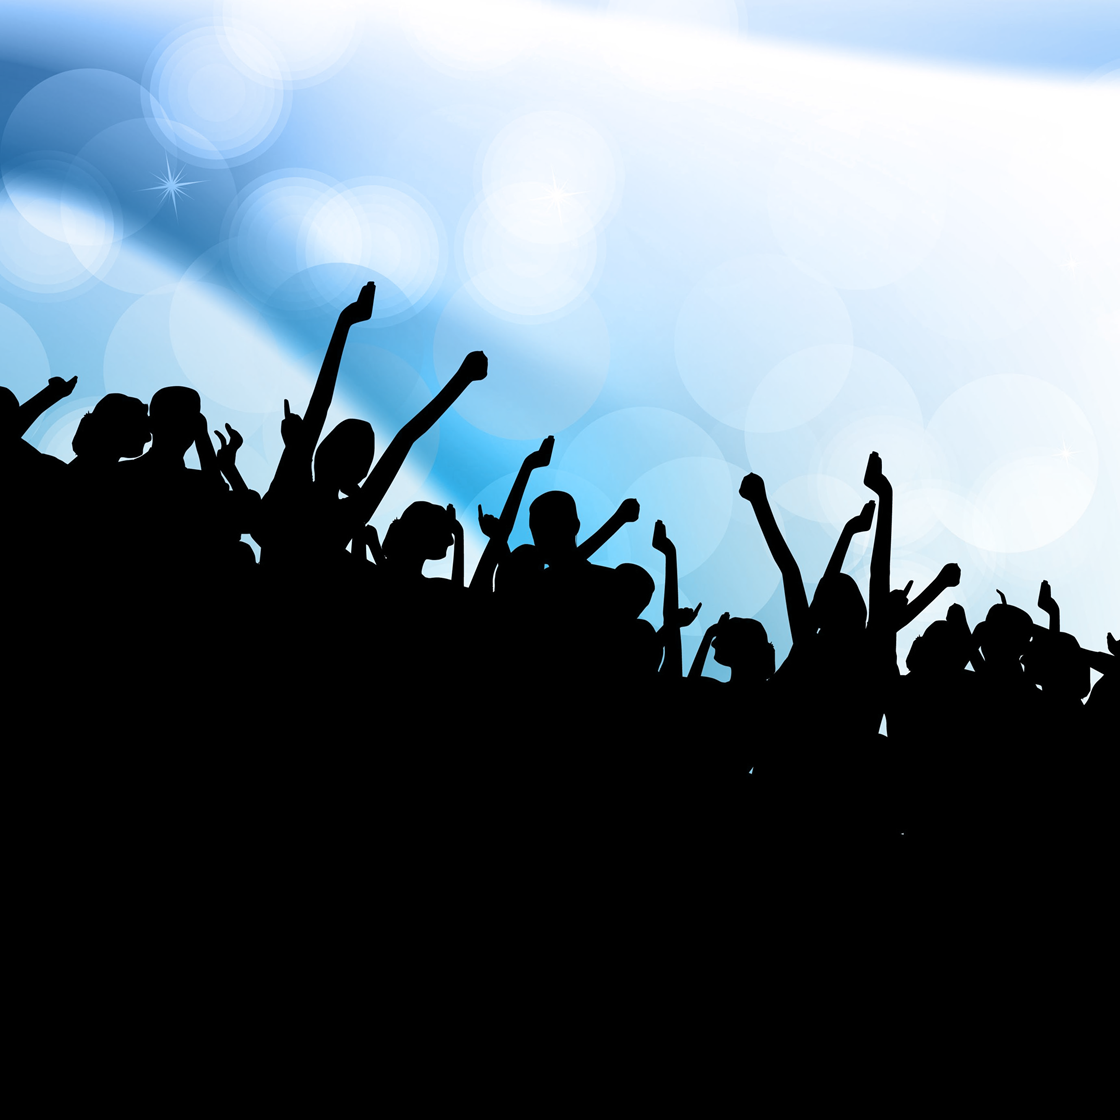 Silhouette of a crowd cheering at a concert